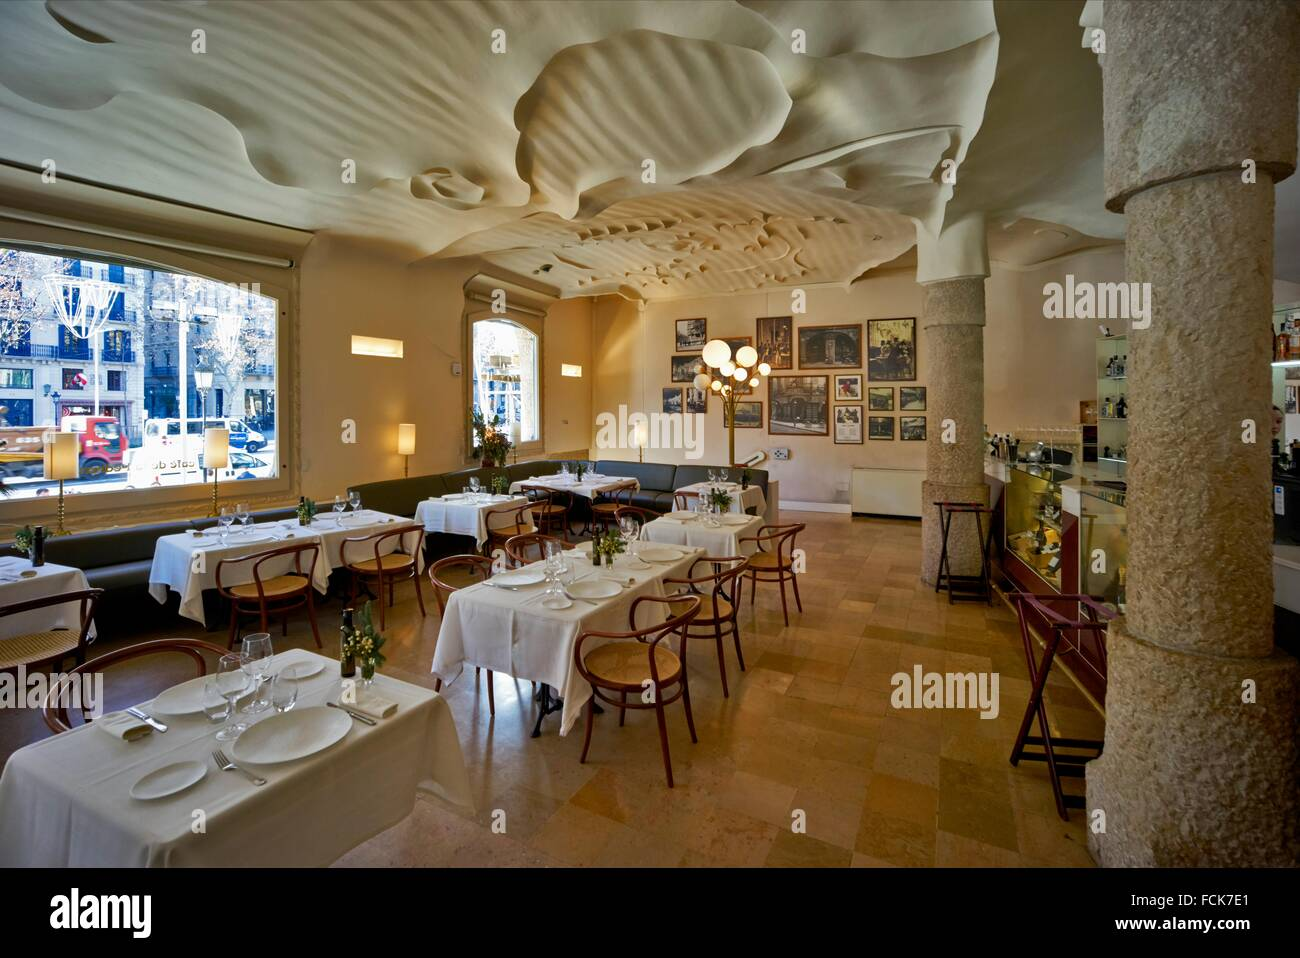 The Interior Of Caf Pedrera At The Ground Floor Of Casa